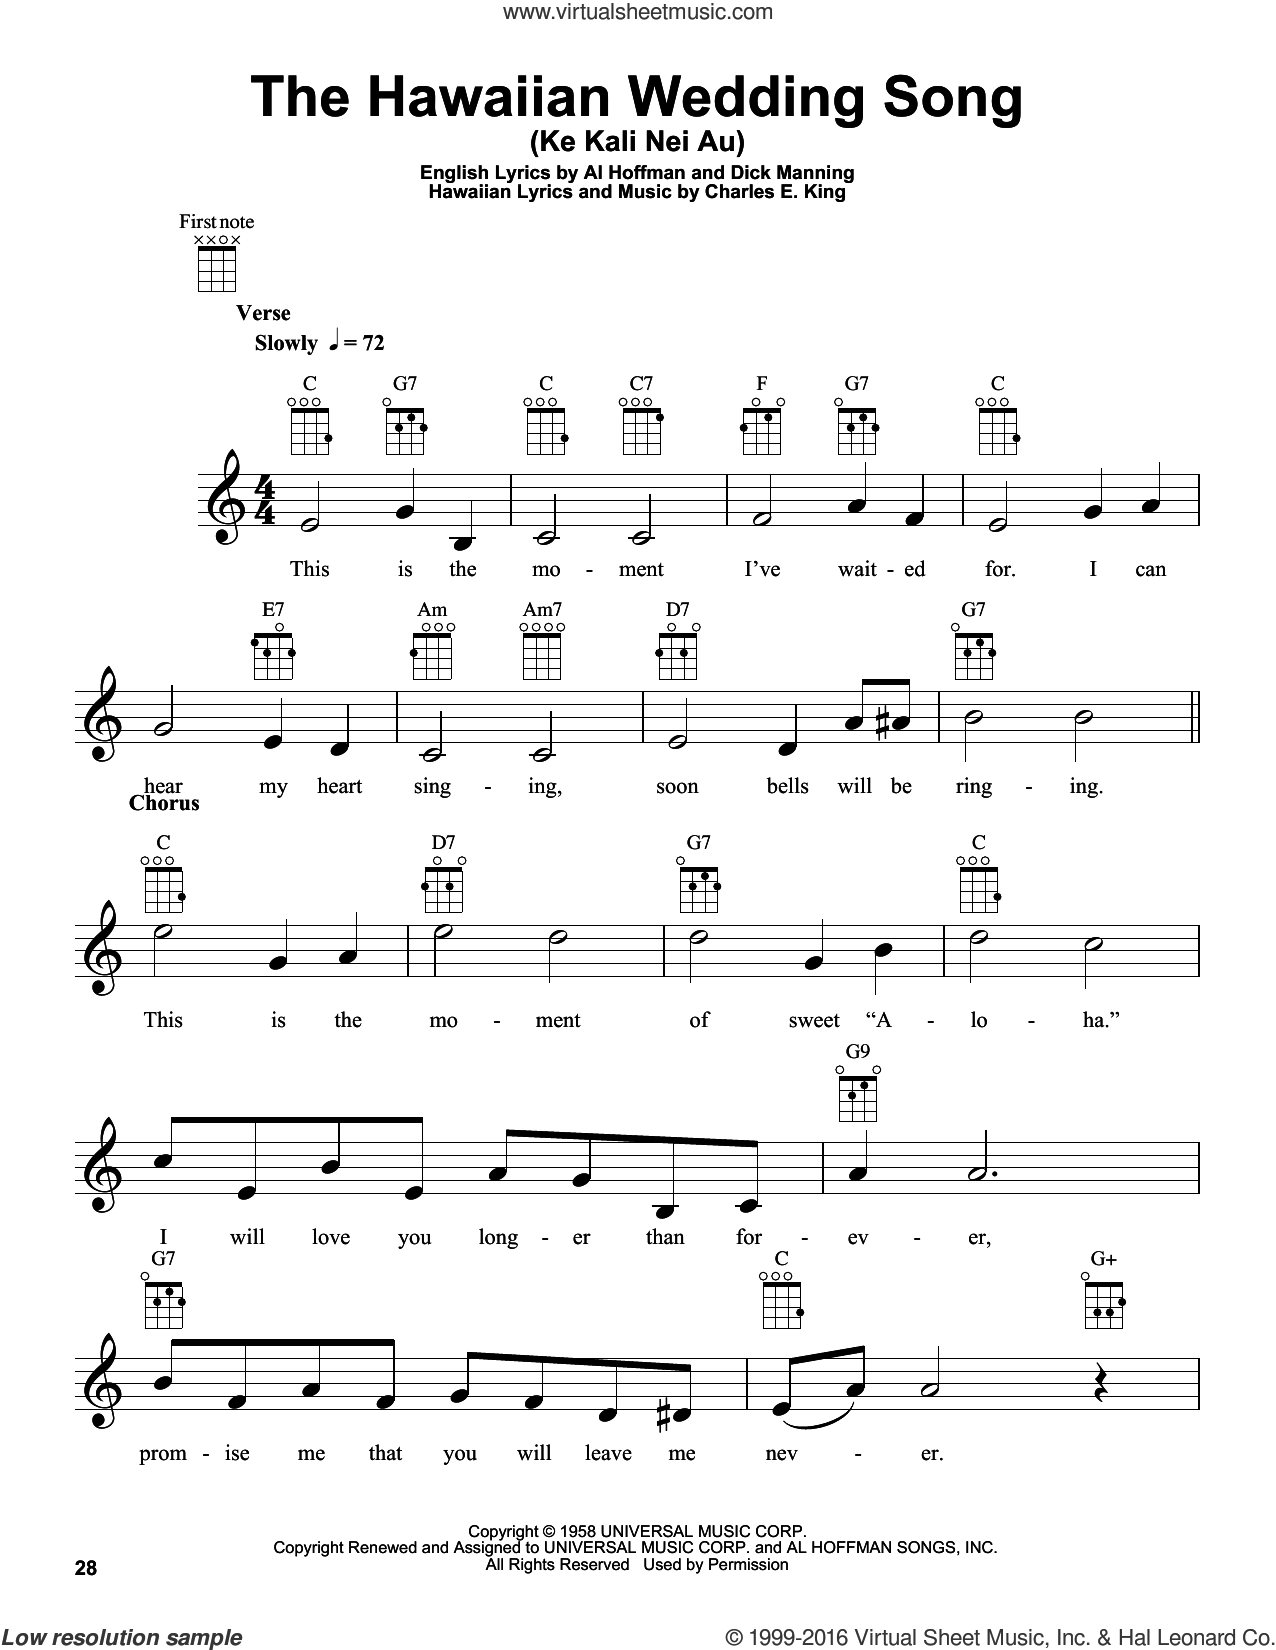 The Hawaiian Wedding Song (Ke Kali Nei Au) sheet music for ukulele by Dick Manning, Andy Williams, Al Hoffman and Charles E. King